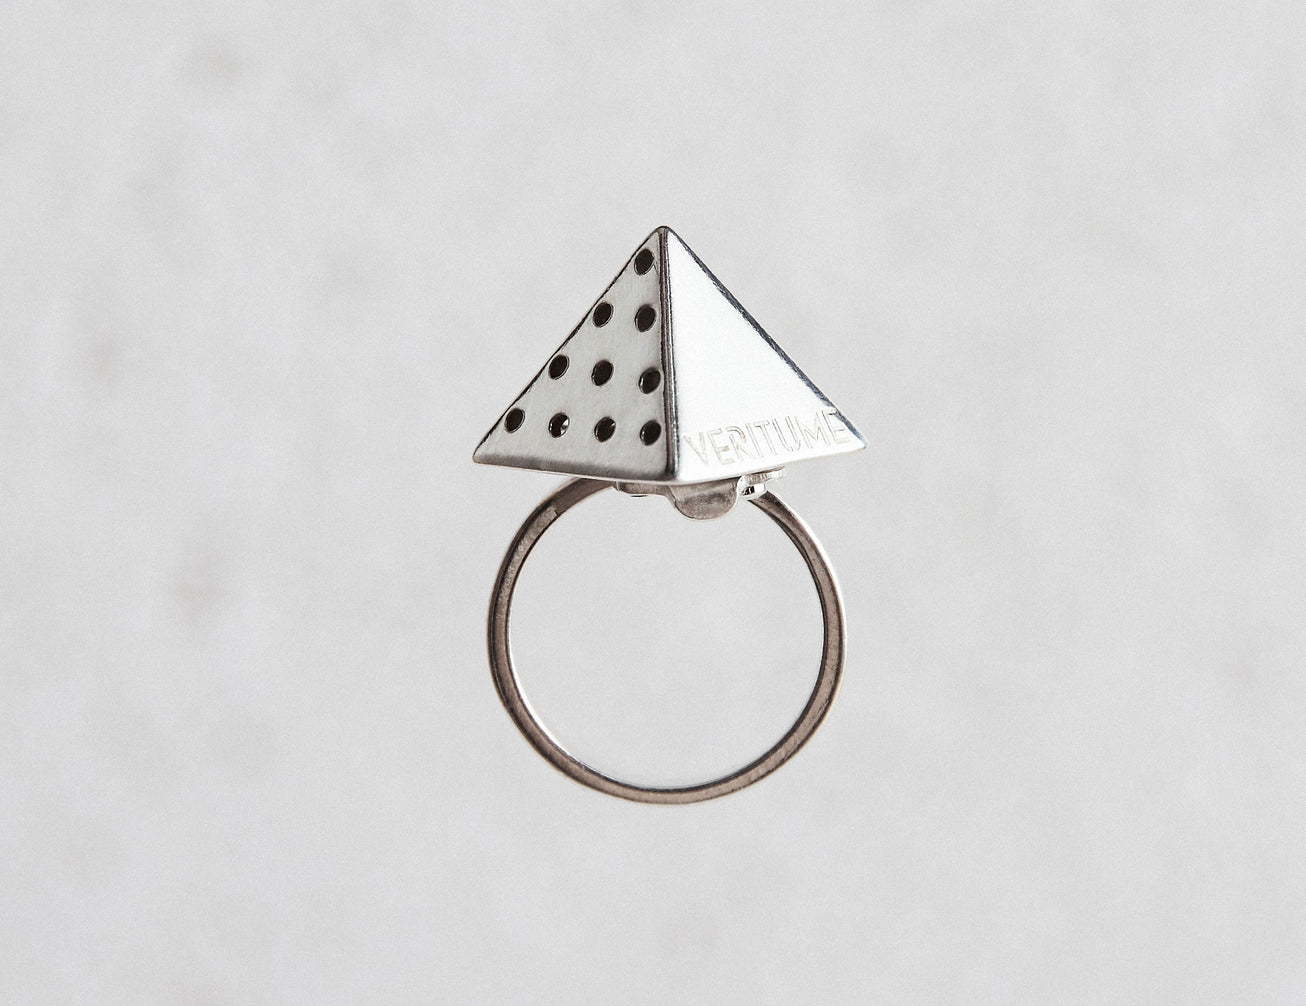 Load image into Gallery viewer, Product picture of Veritume ring with white background